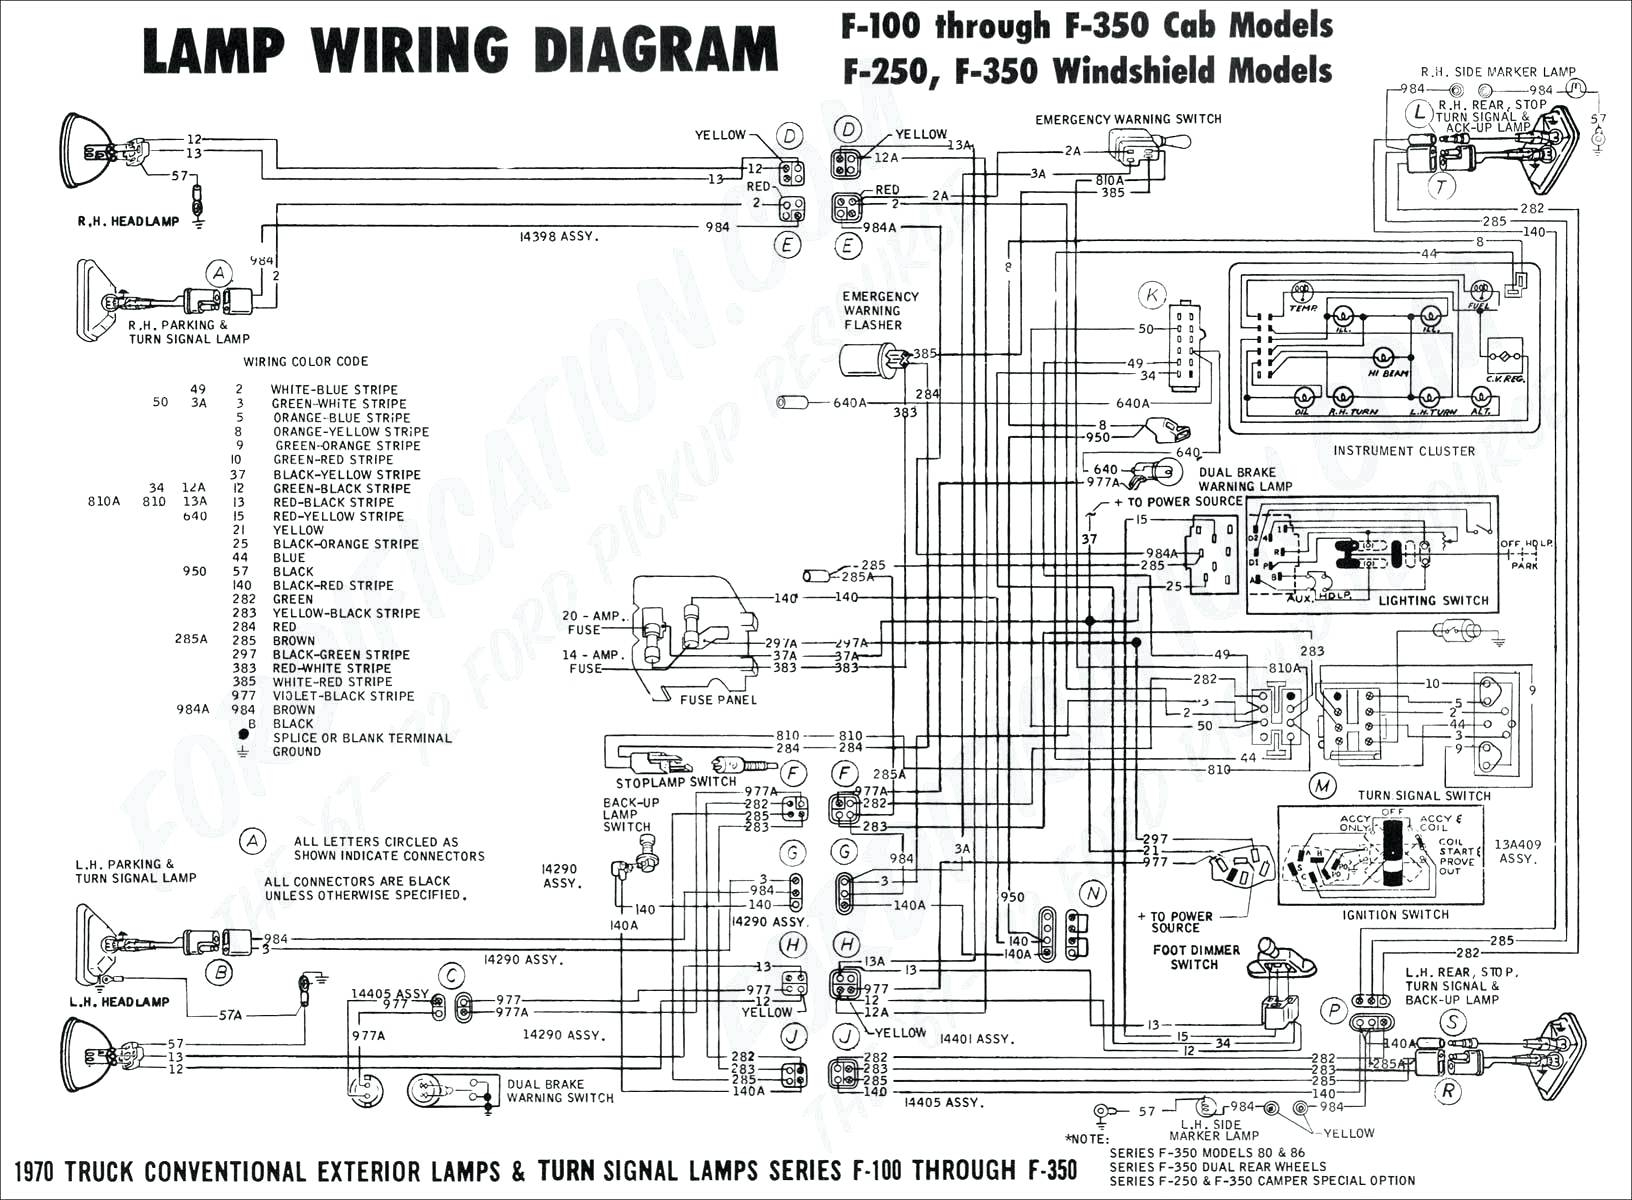 2007 Ram 2500 Wiring Diagram Diagram Base Website Wiring Diagram -  VENNDIAGRAMDEFINITION.ITASEINAUDI.ITDiagram Base Website Full Edition